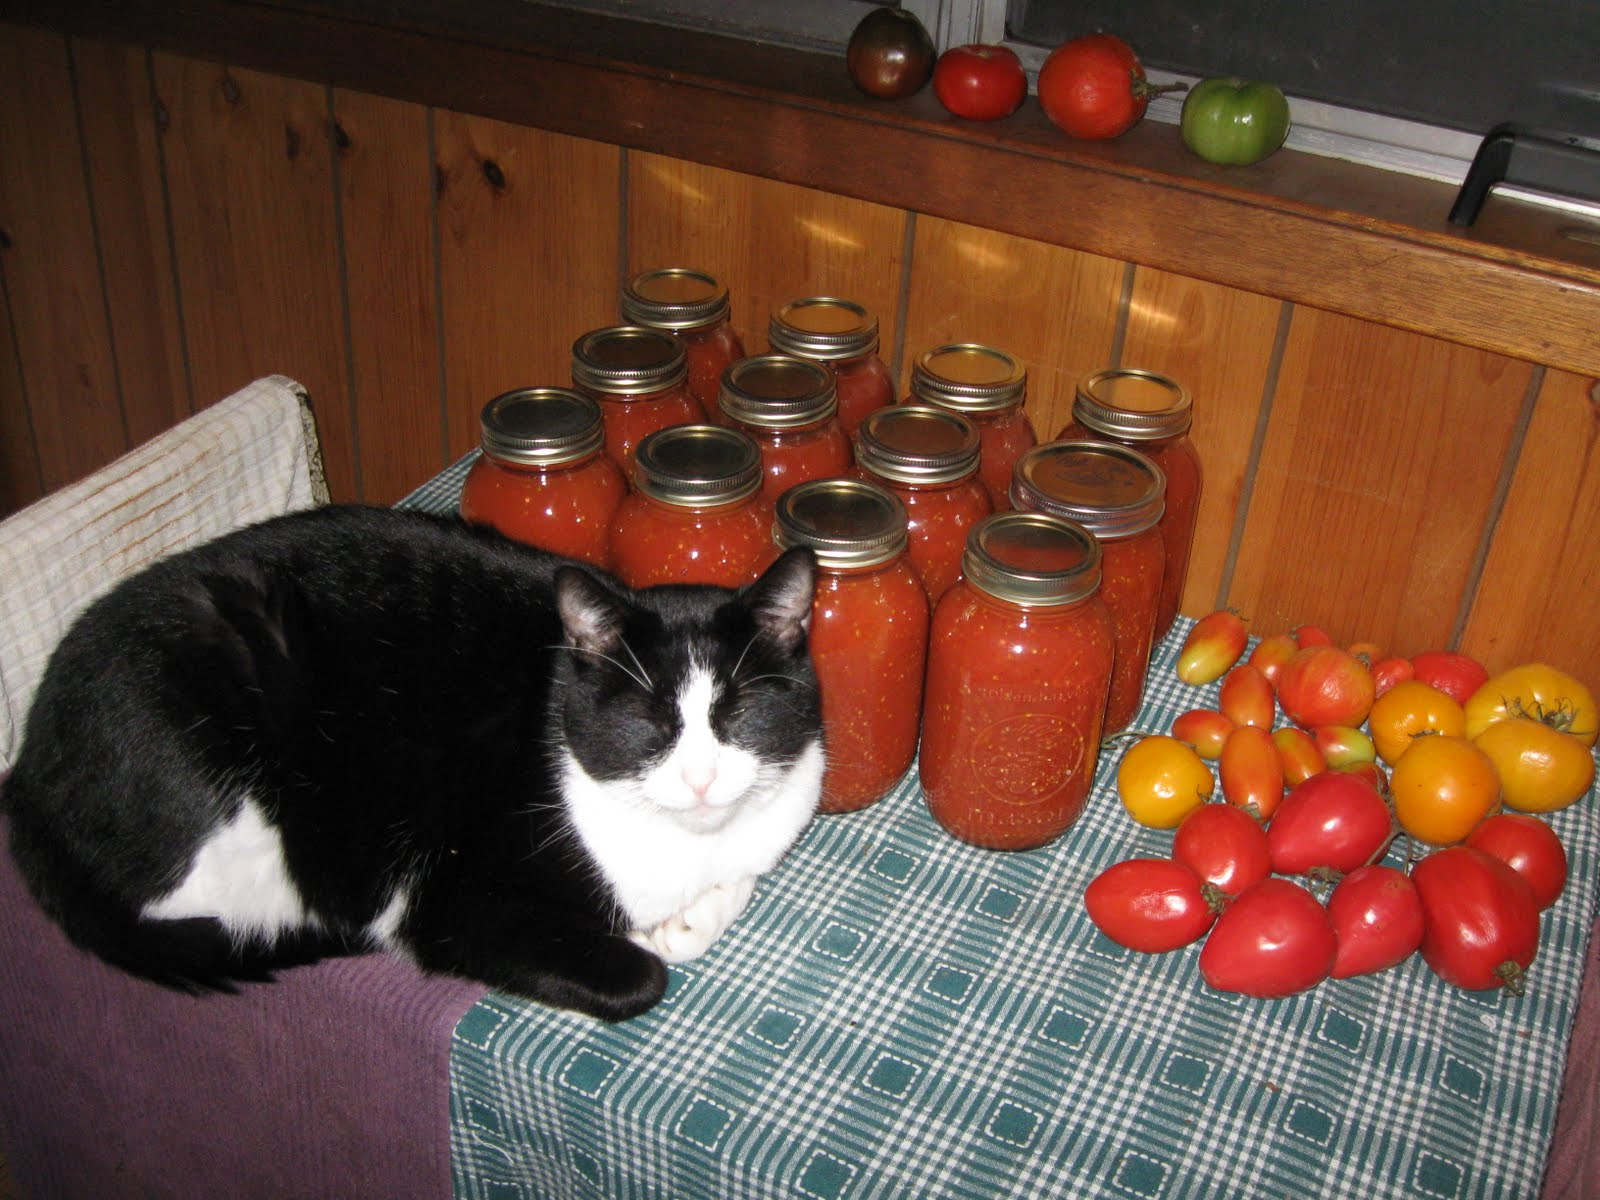 There will be no more warm jars for Rodger, the fat black cheshire cat, ...